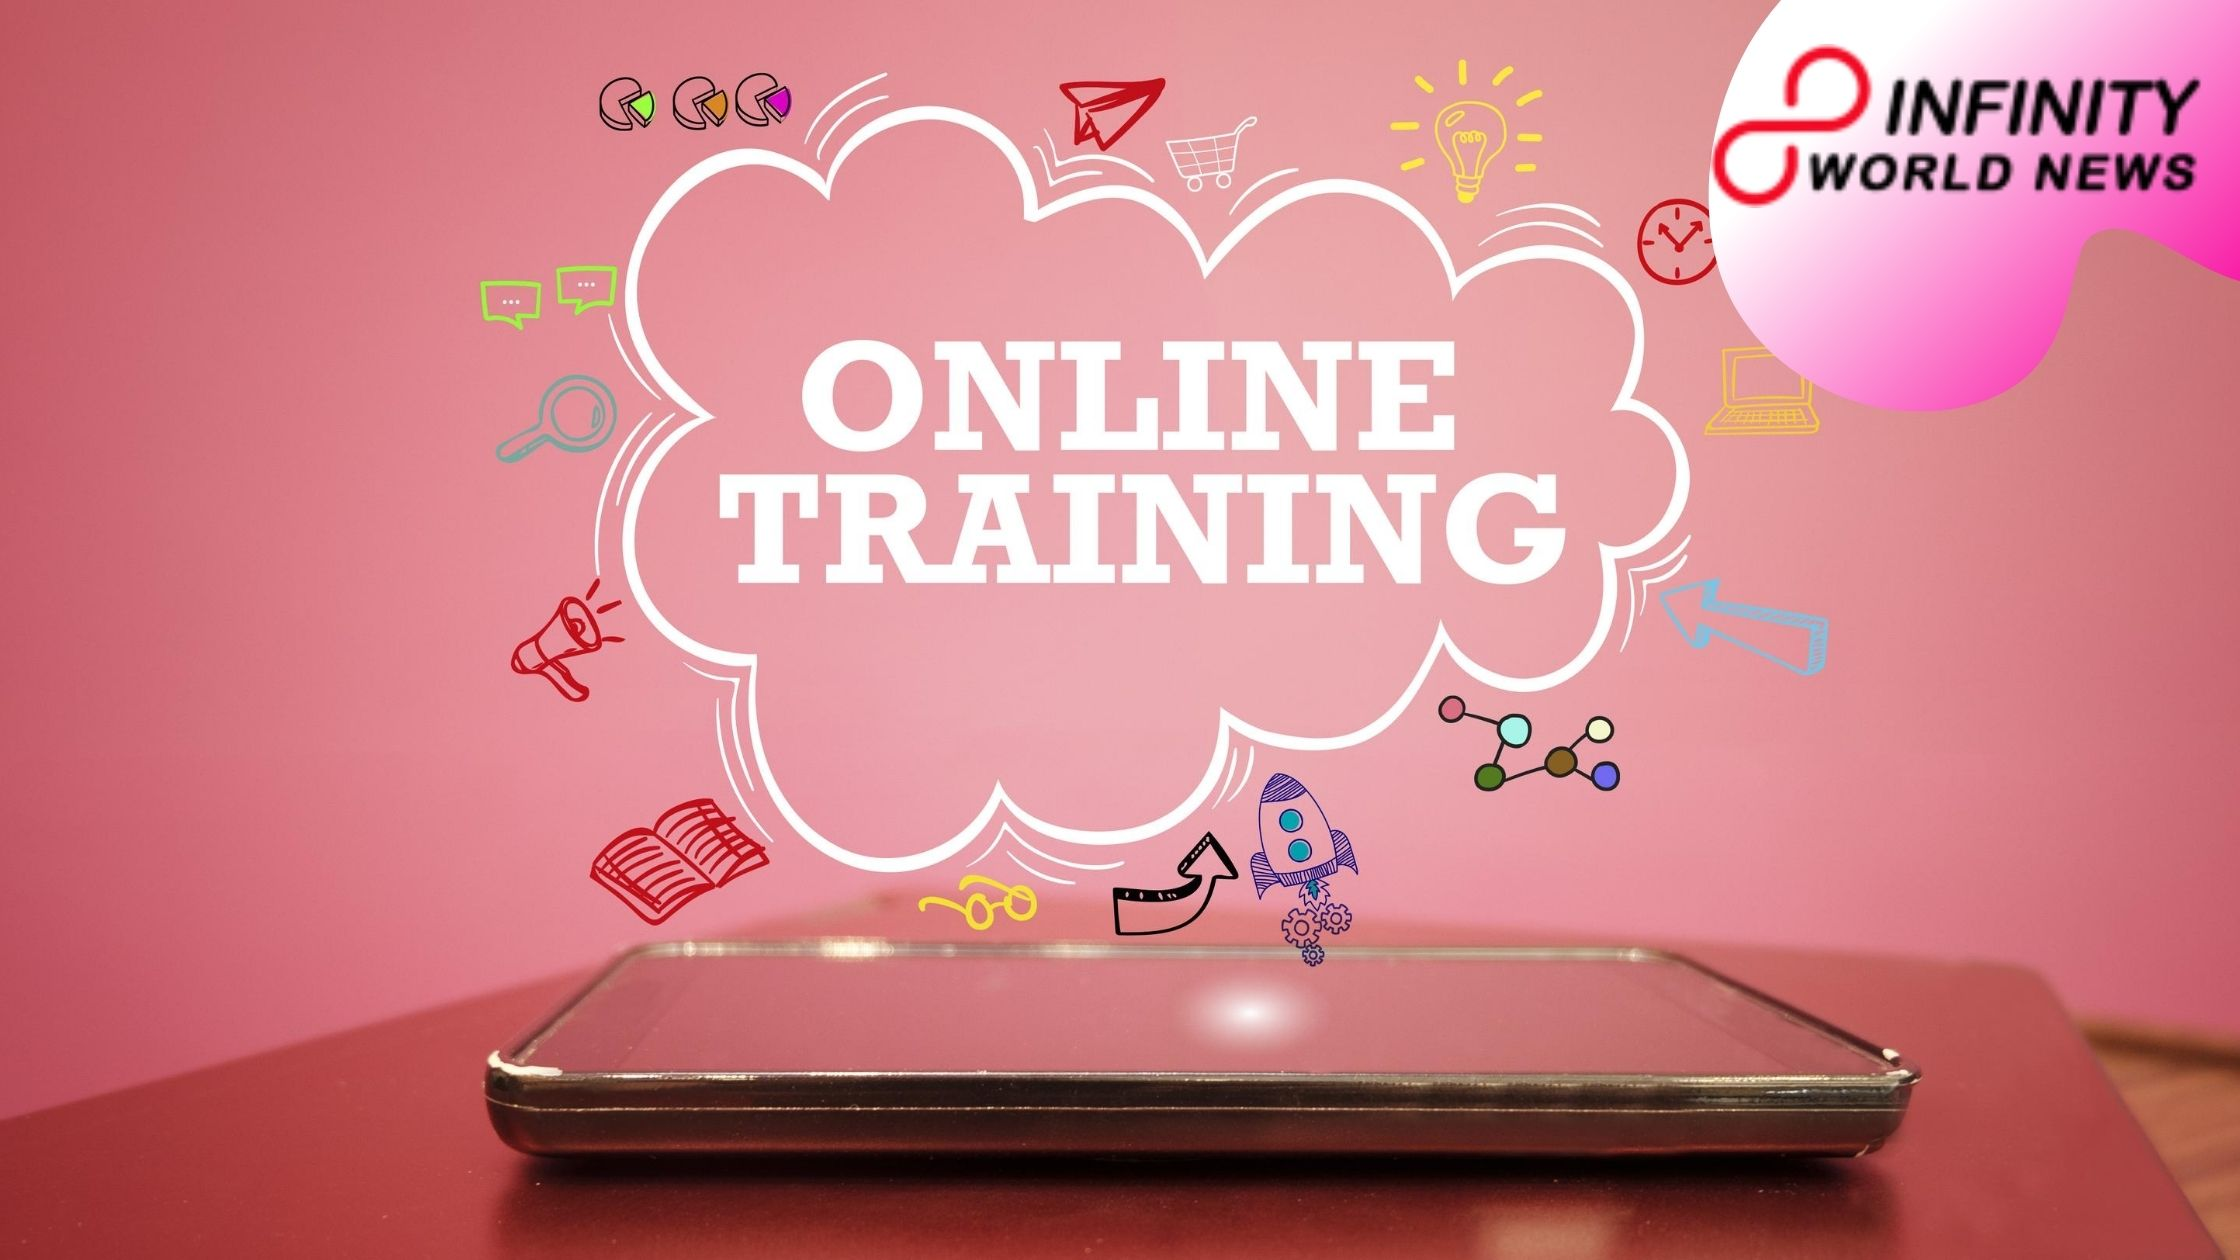 With The Help Of 'Corporate Social Responsibility' Haryana To Train Youth Through Online Coaching